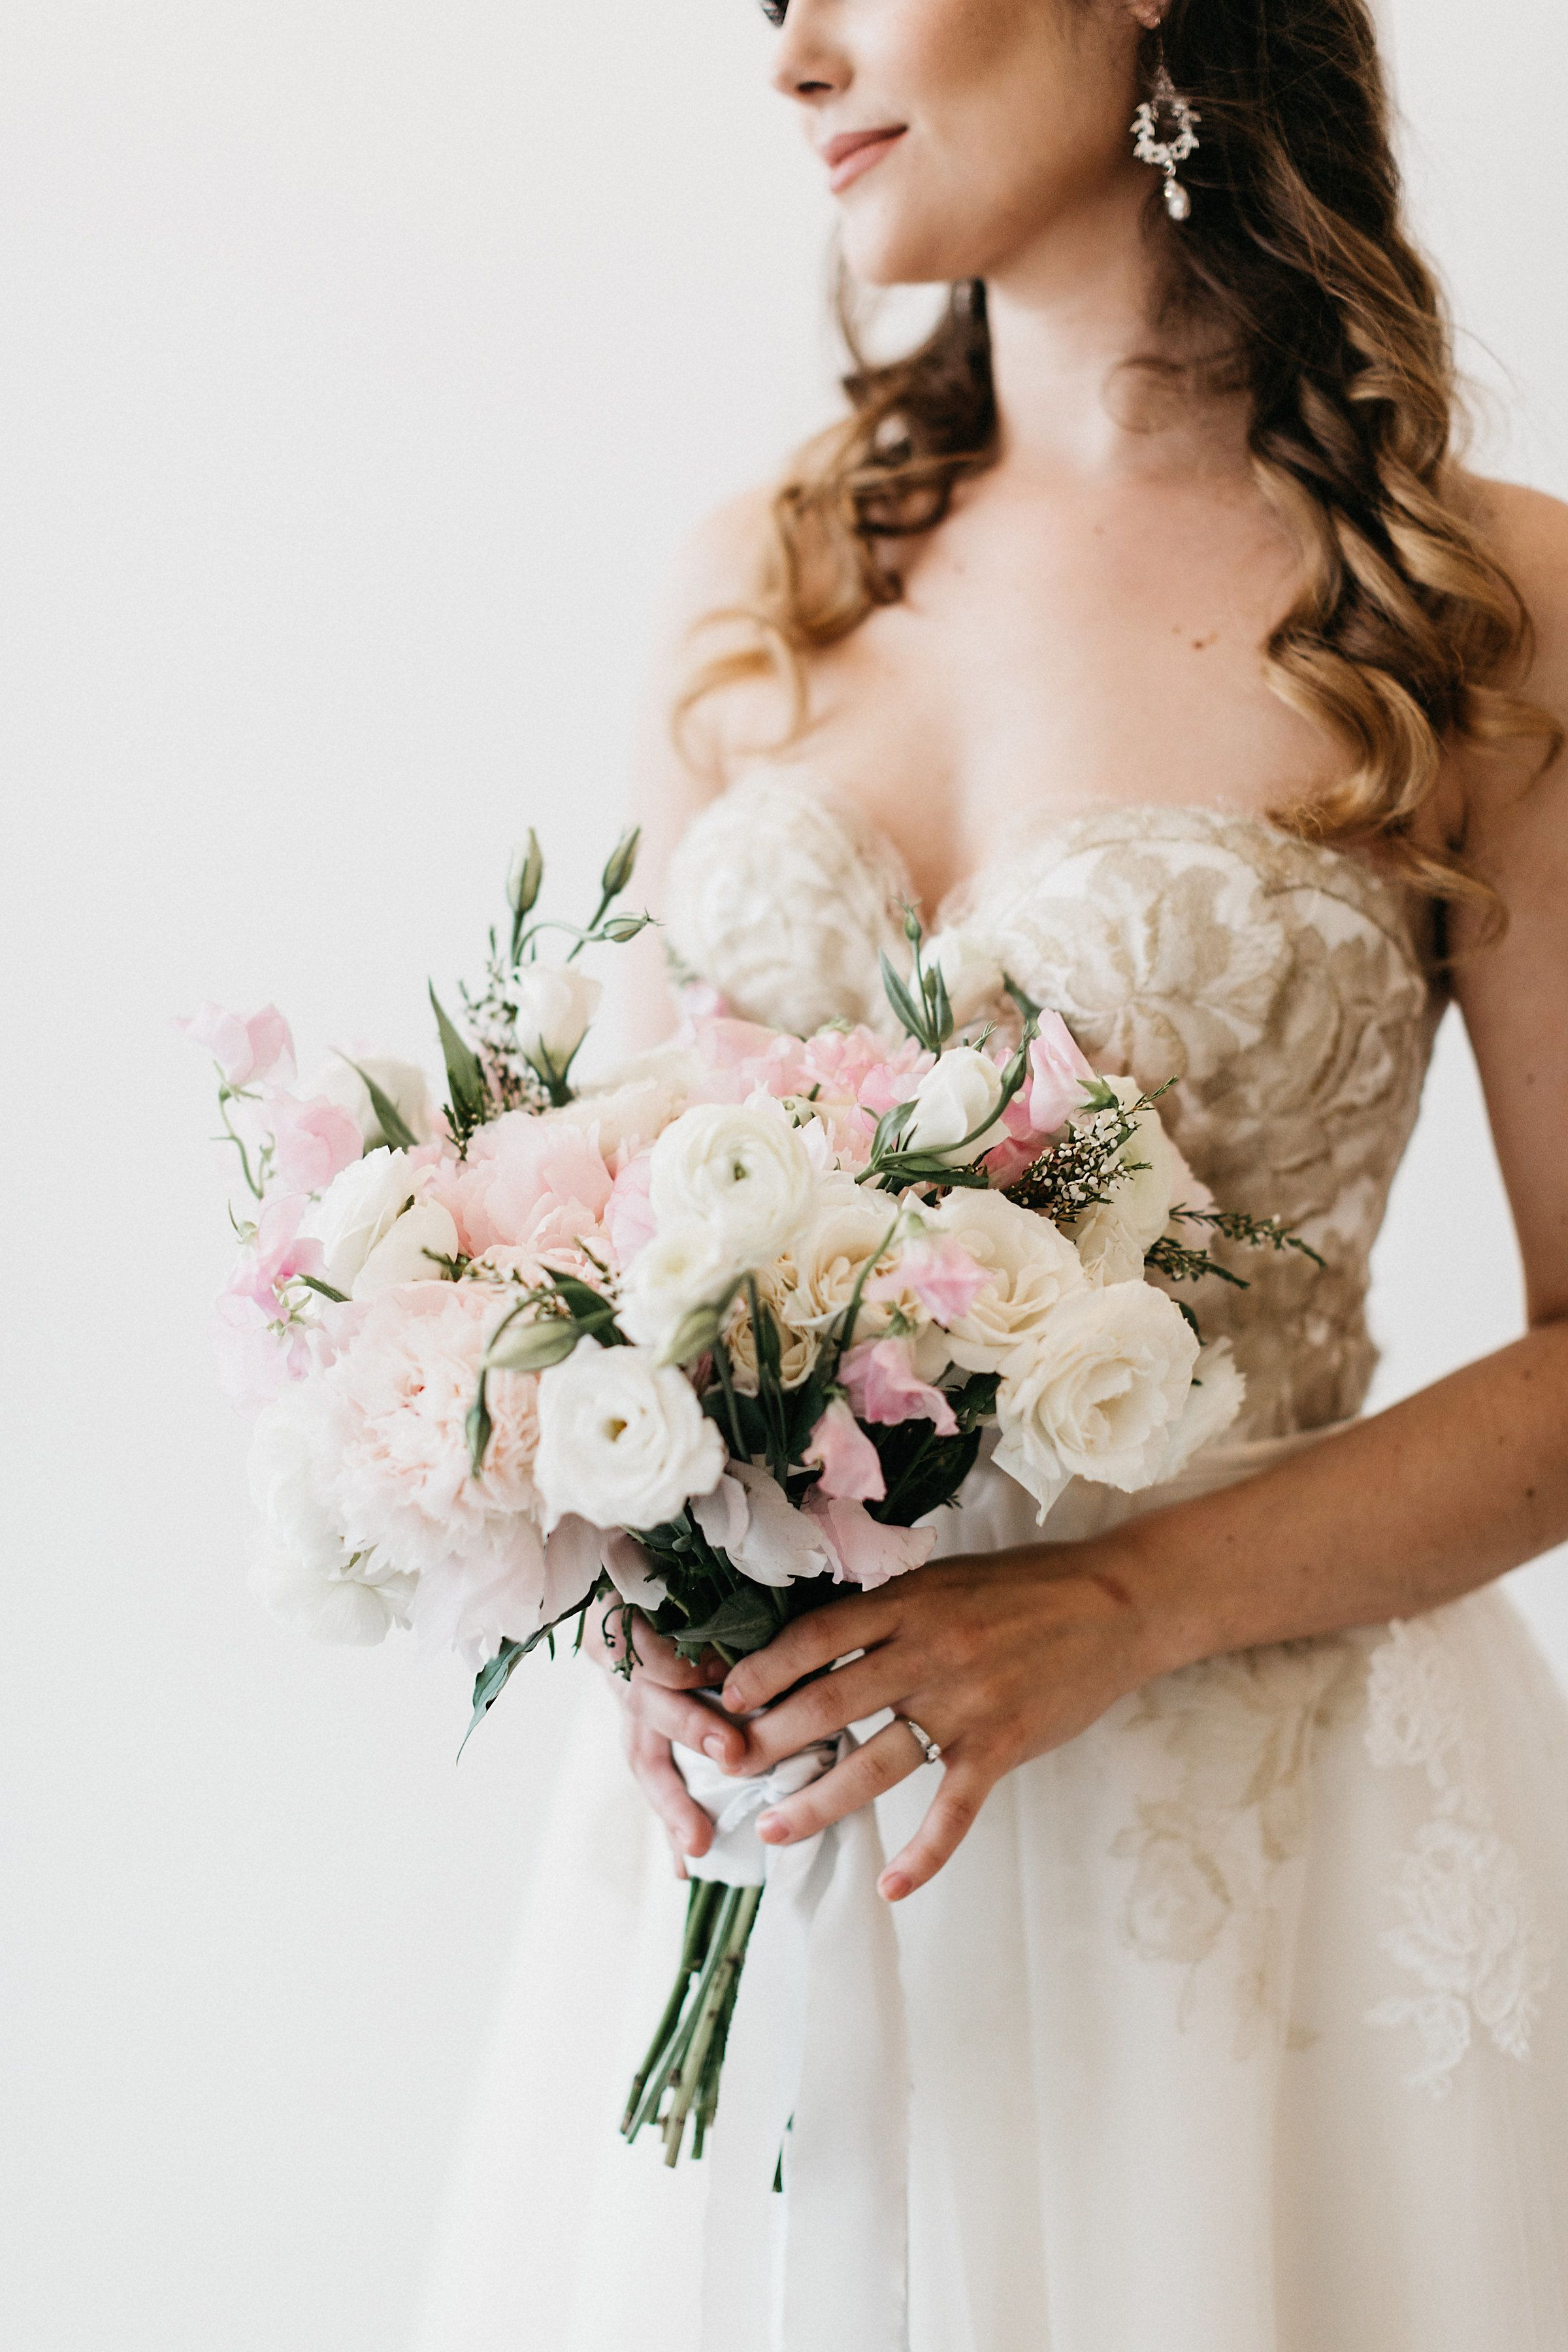 This Inspiration Is A Study In Classic Blush Colored Romance